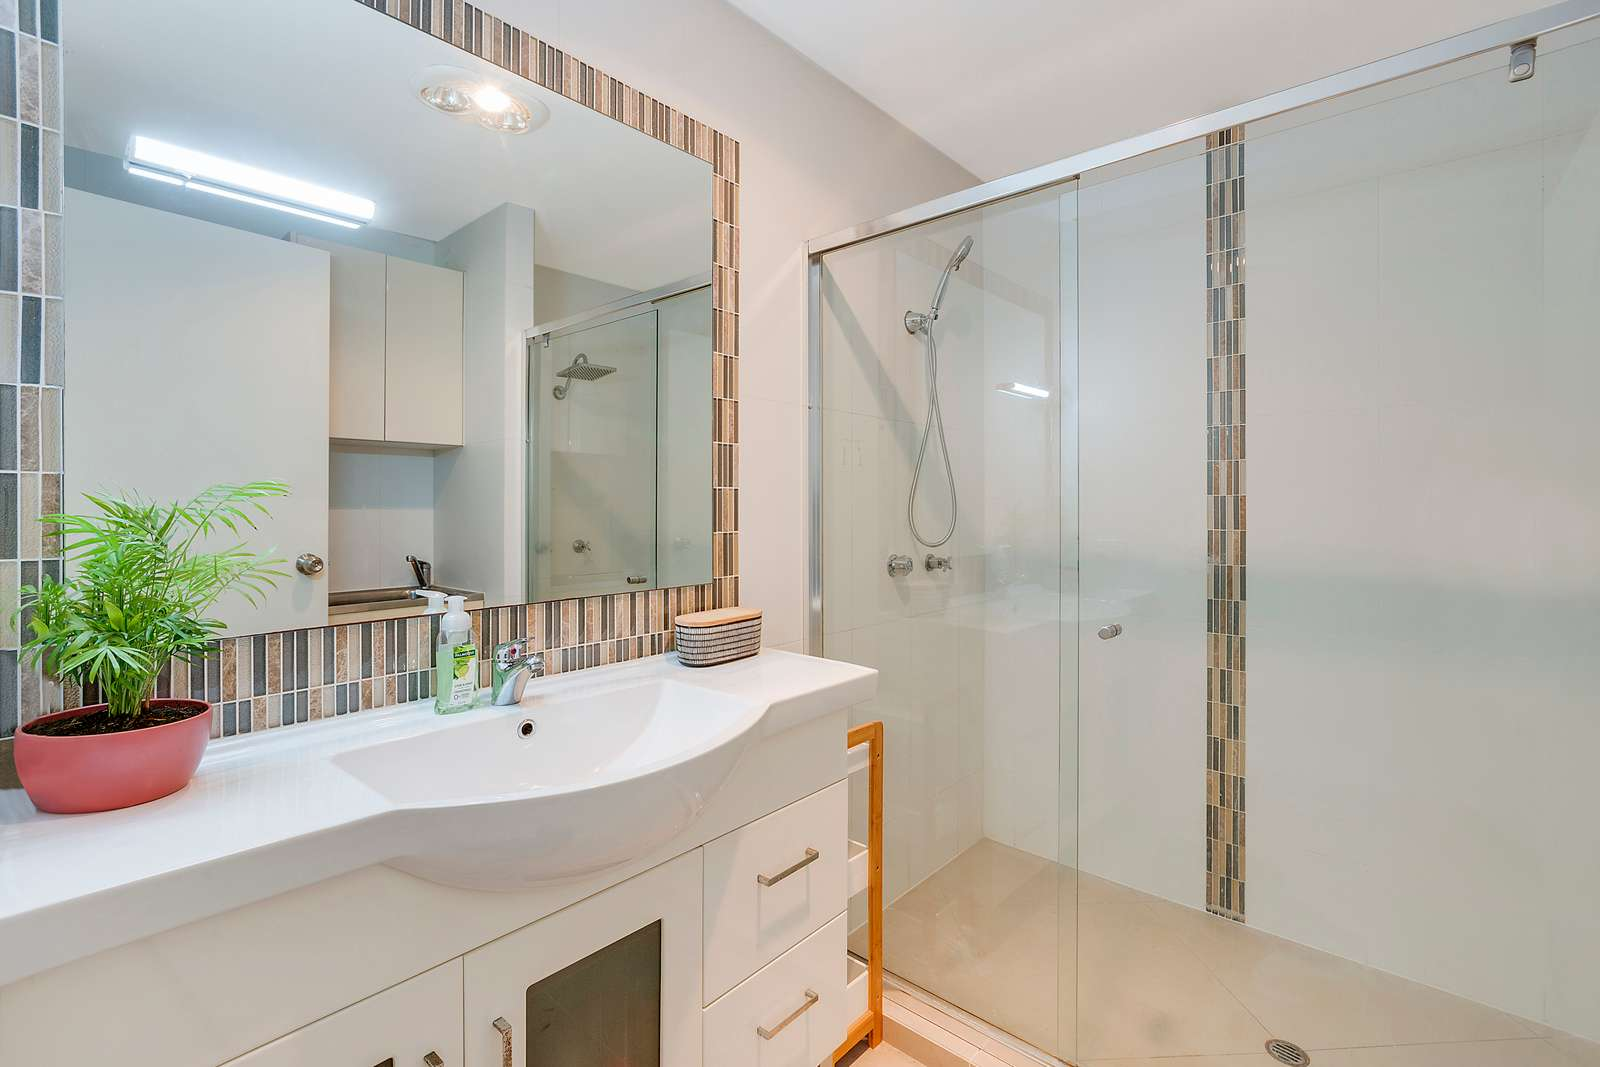 2/7 Metro Crescent, Oxenford, QLD 4210